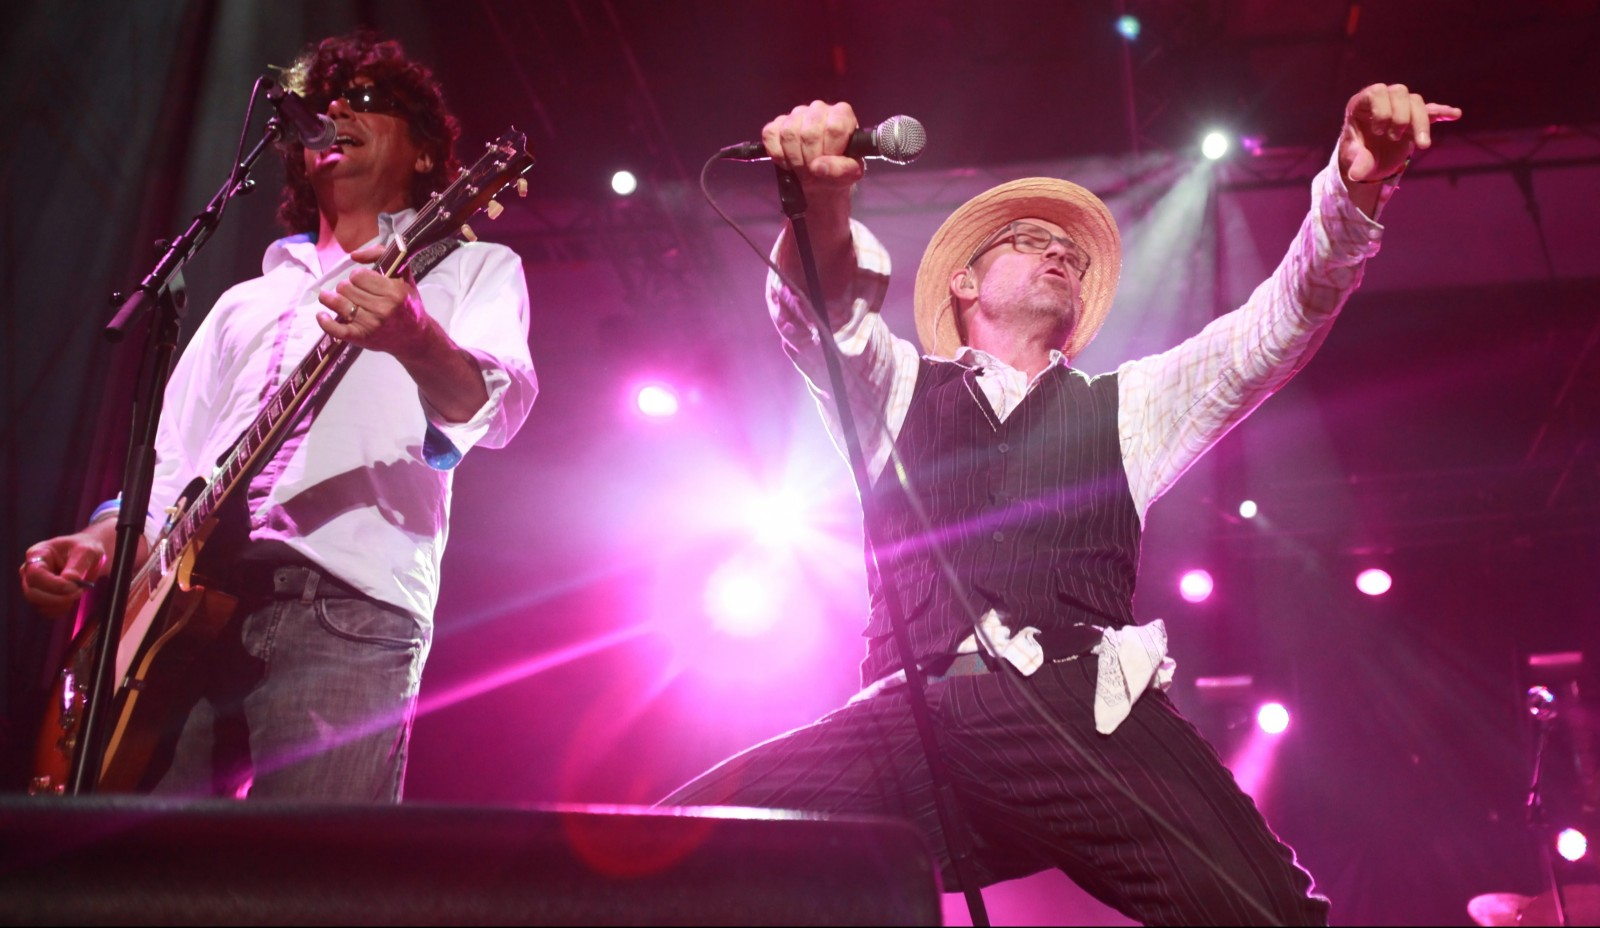 The Tragically Hip has released one track from their new album, which will be released June 7.